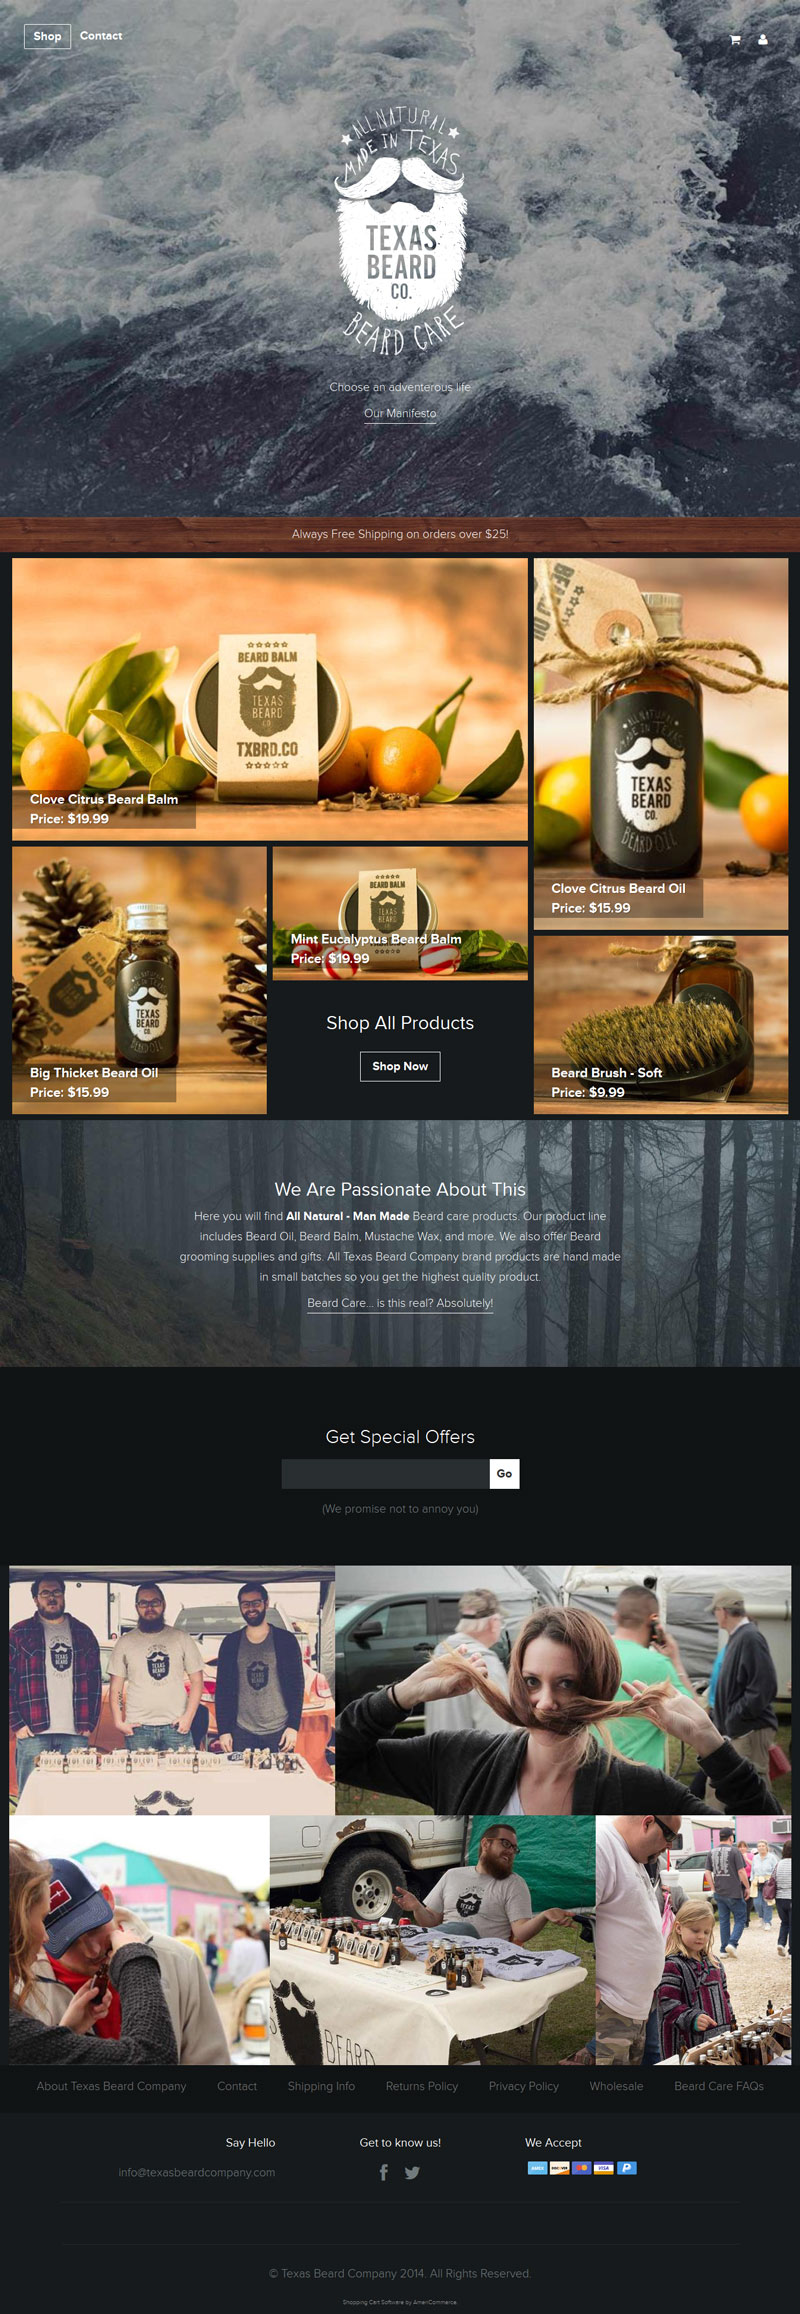 Texas Beard Company – Flat Design